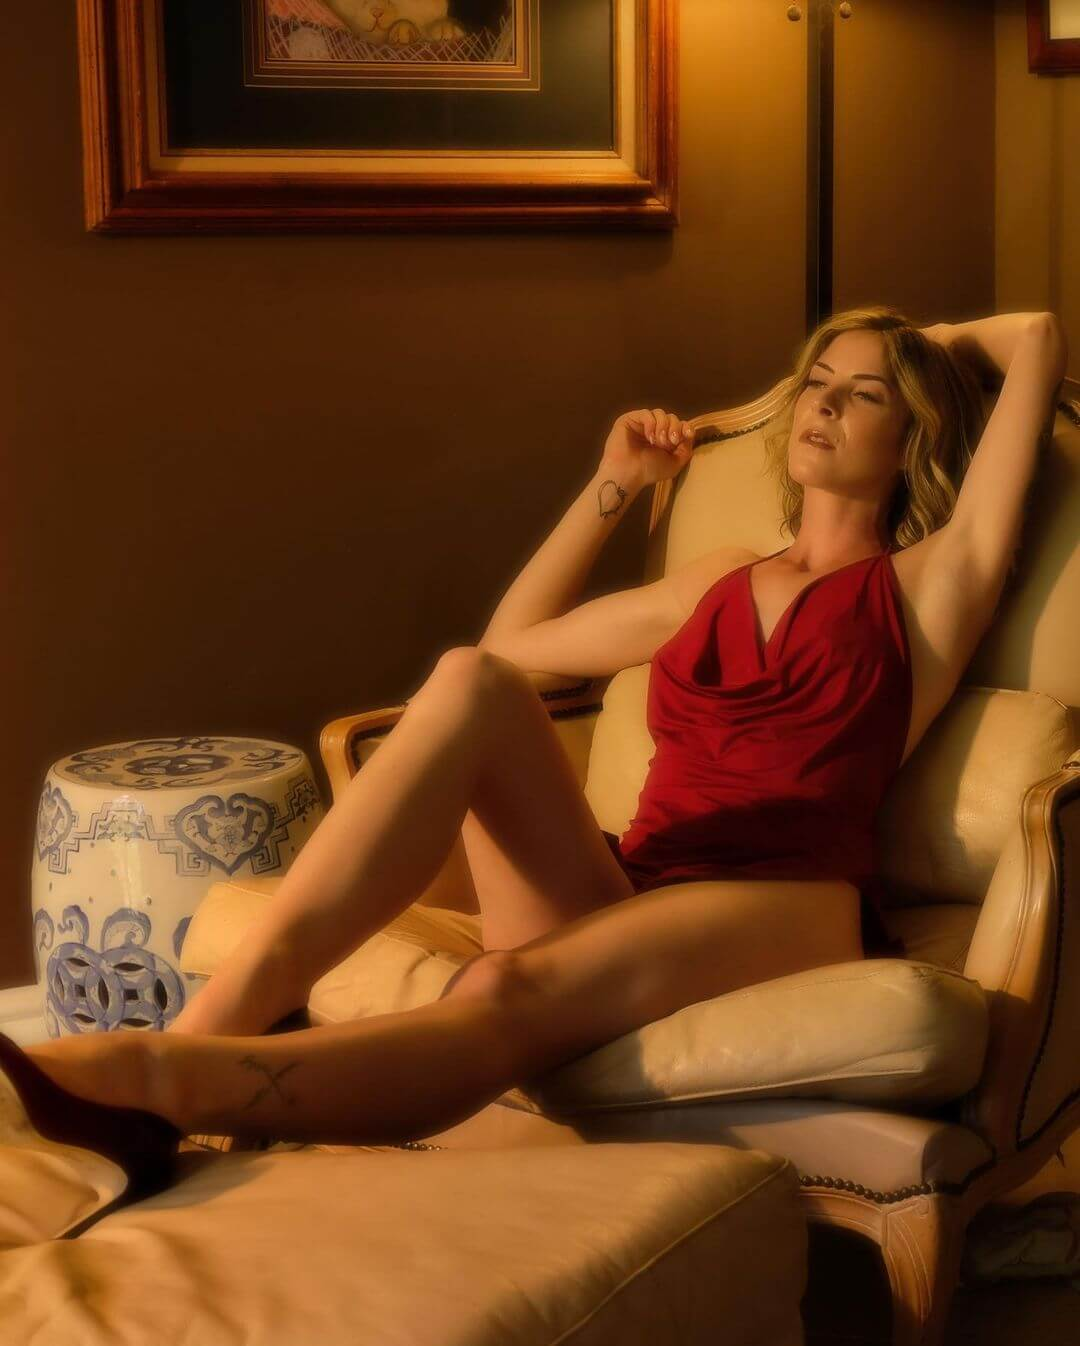 Beautiful American model Cherish @cherishthemodel sitting on a leather chair wearing a red dress and black high heels putting her long sexy legs on display in a sensual photo session